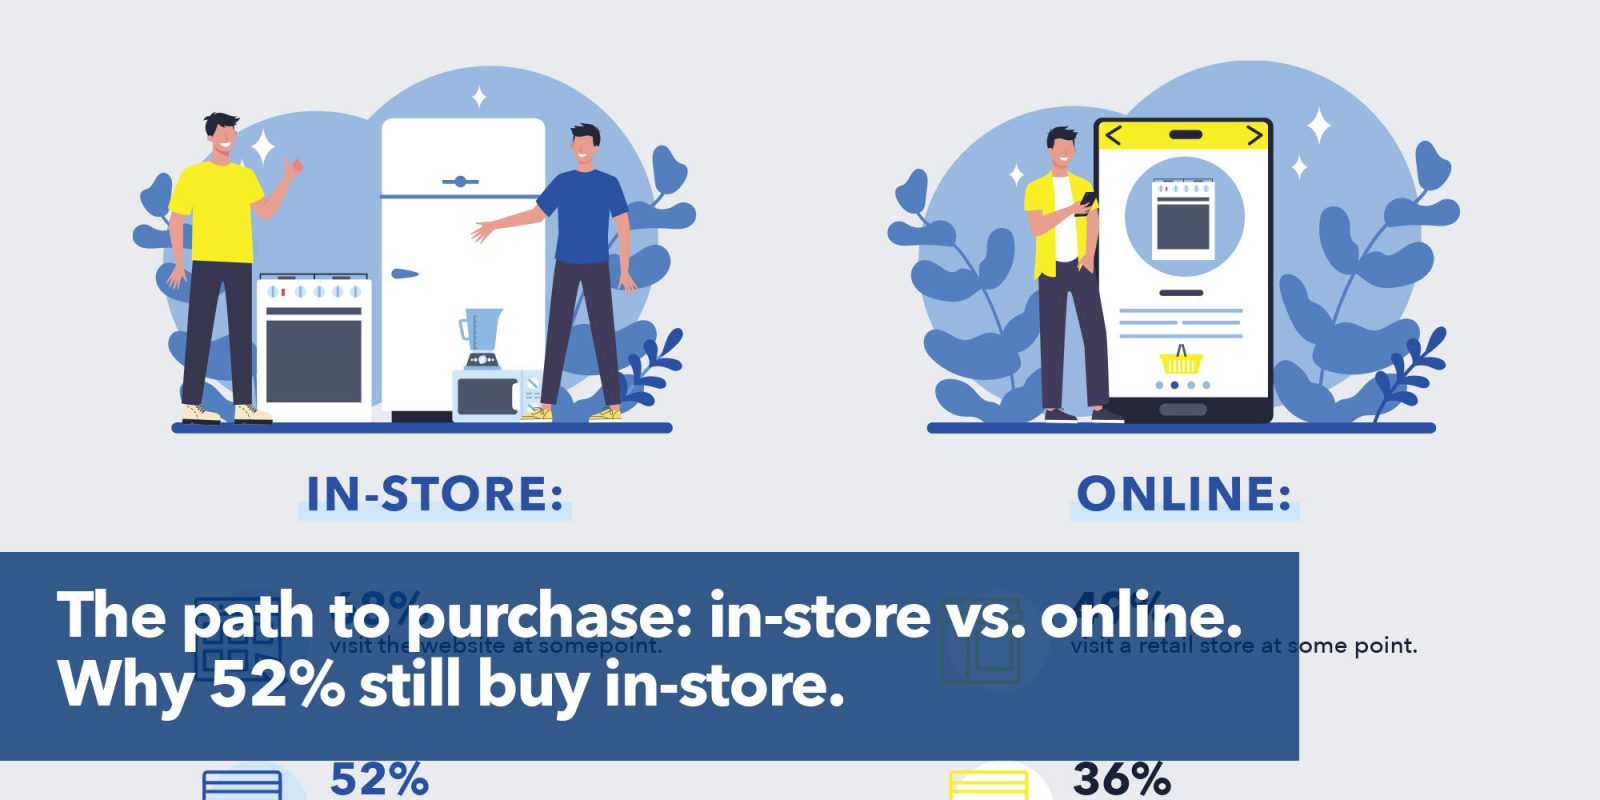 7 in 10 shoppers looked online before they bought in-store.